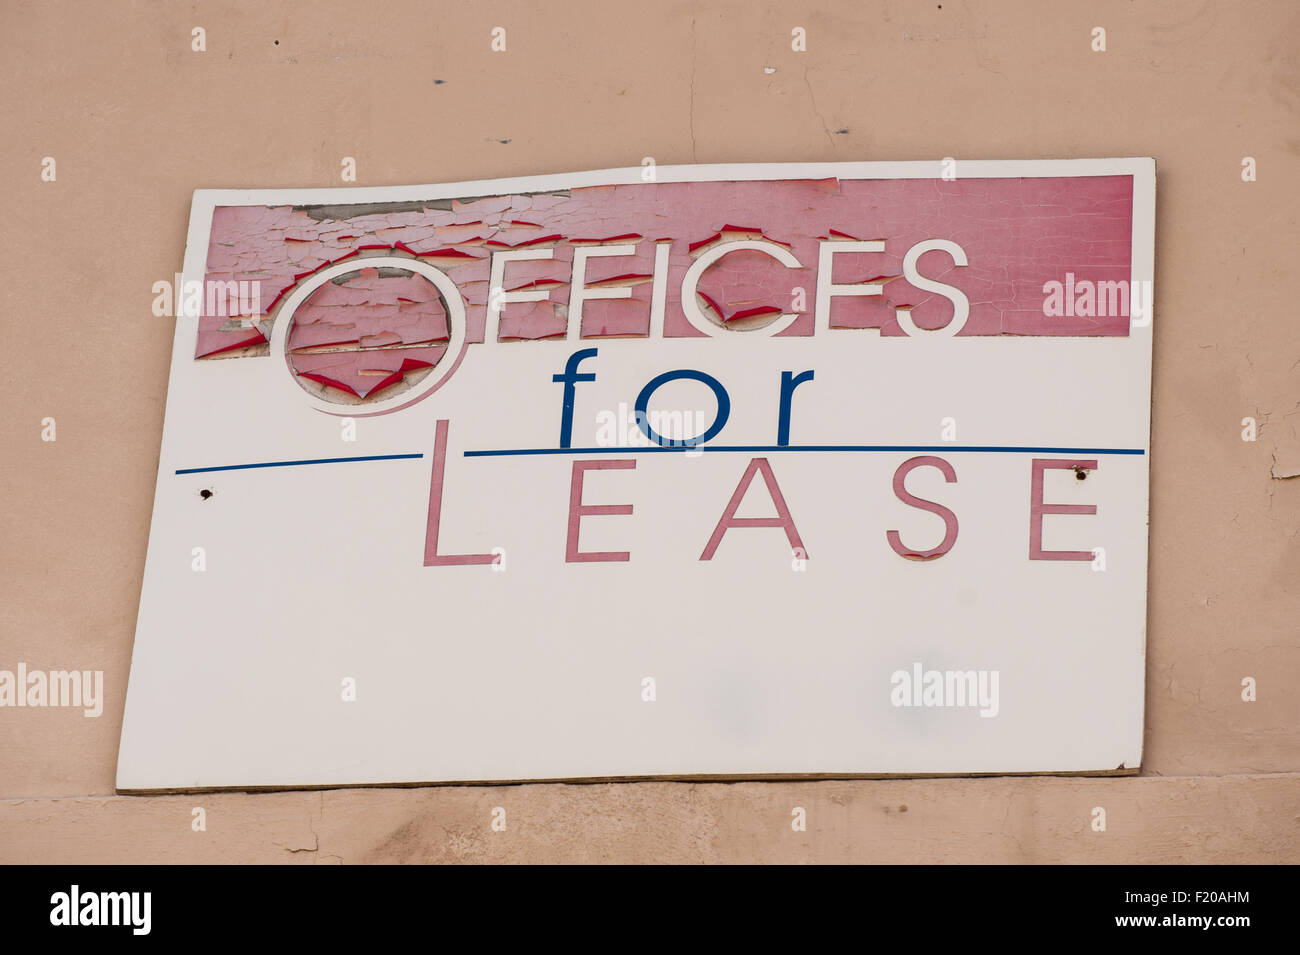 California, USA. 'Offices For Lease' sign with peeling red paint. - Stock Image